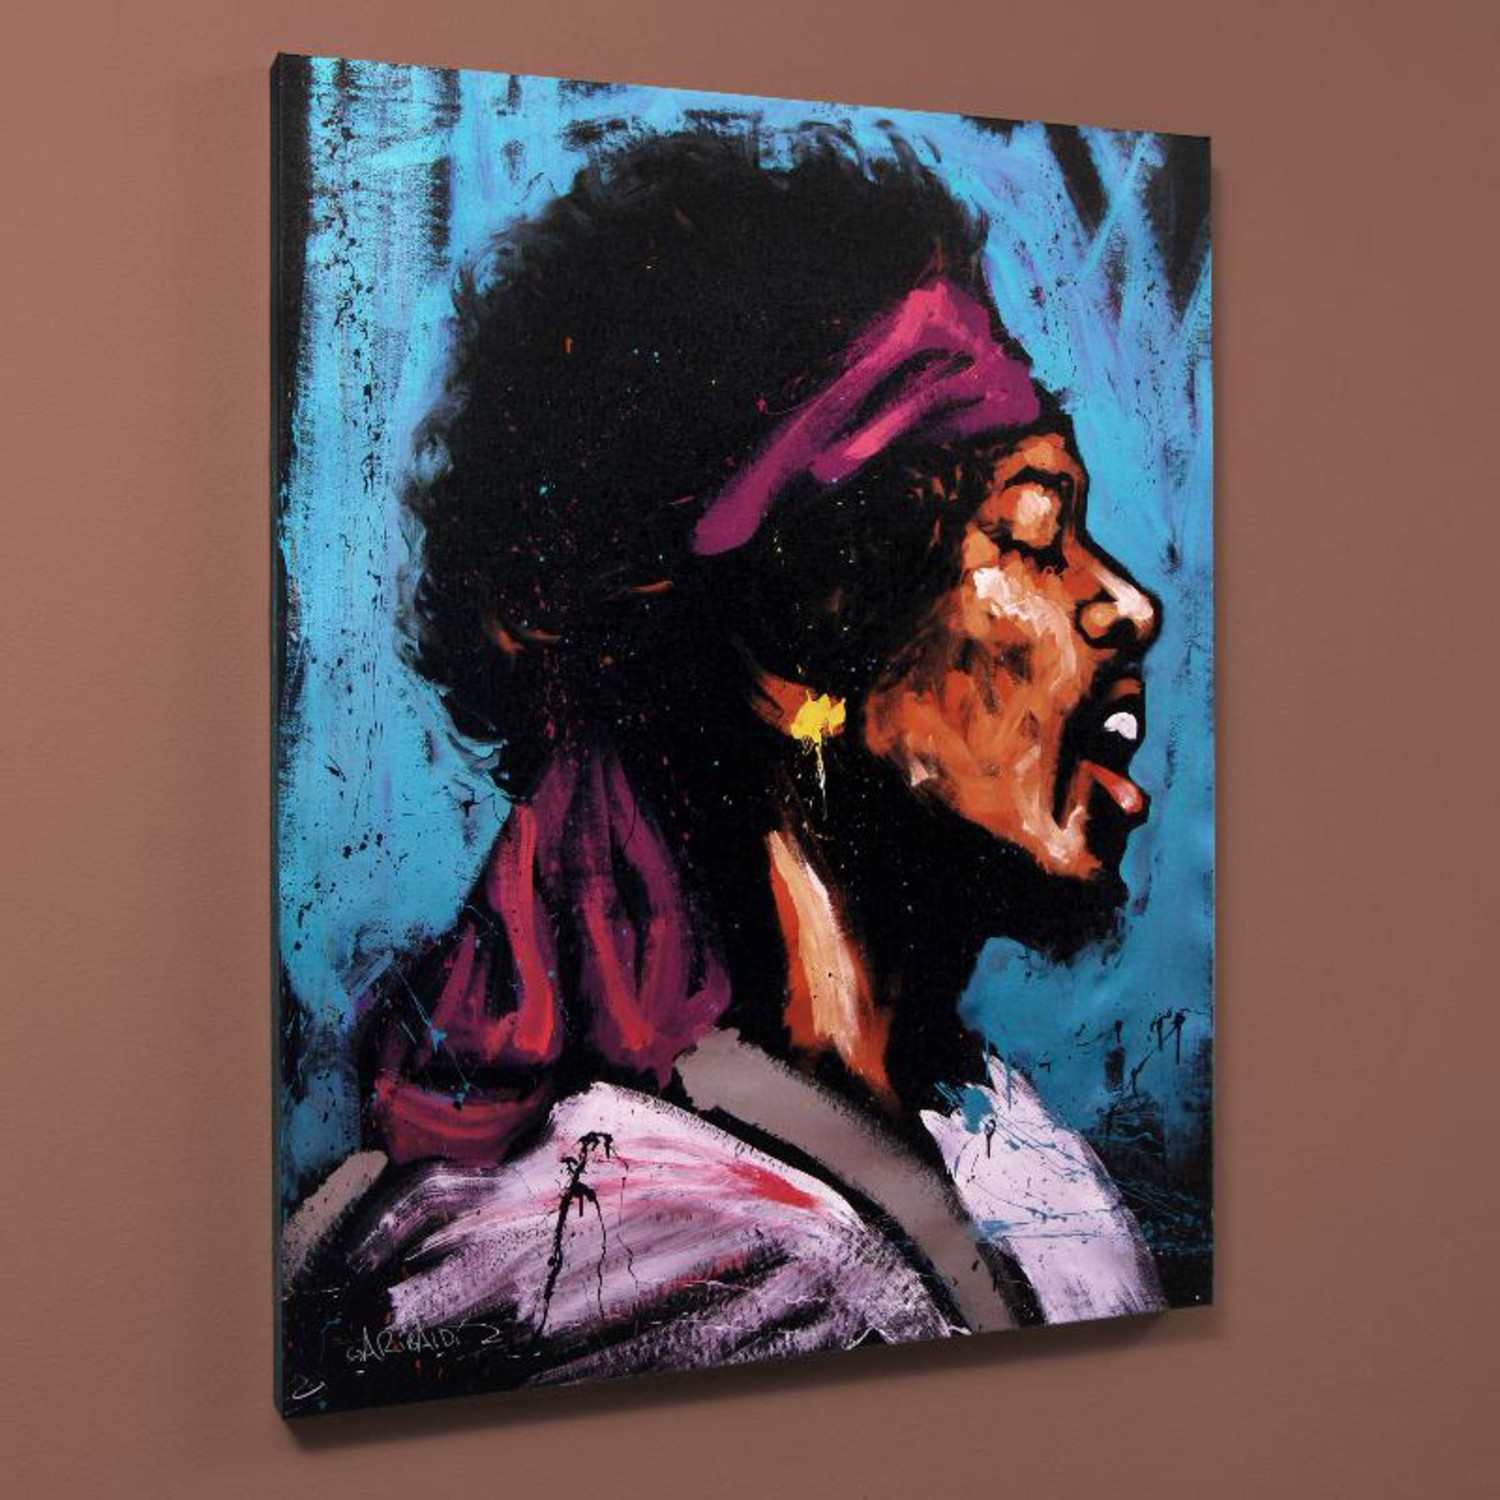 jimi hendrix bandana 28quotw x 35quoth x 1quotd david